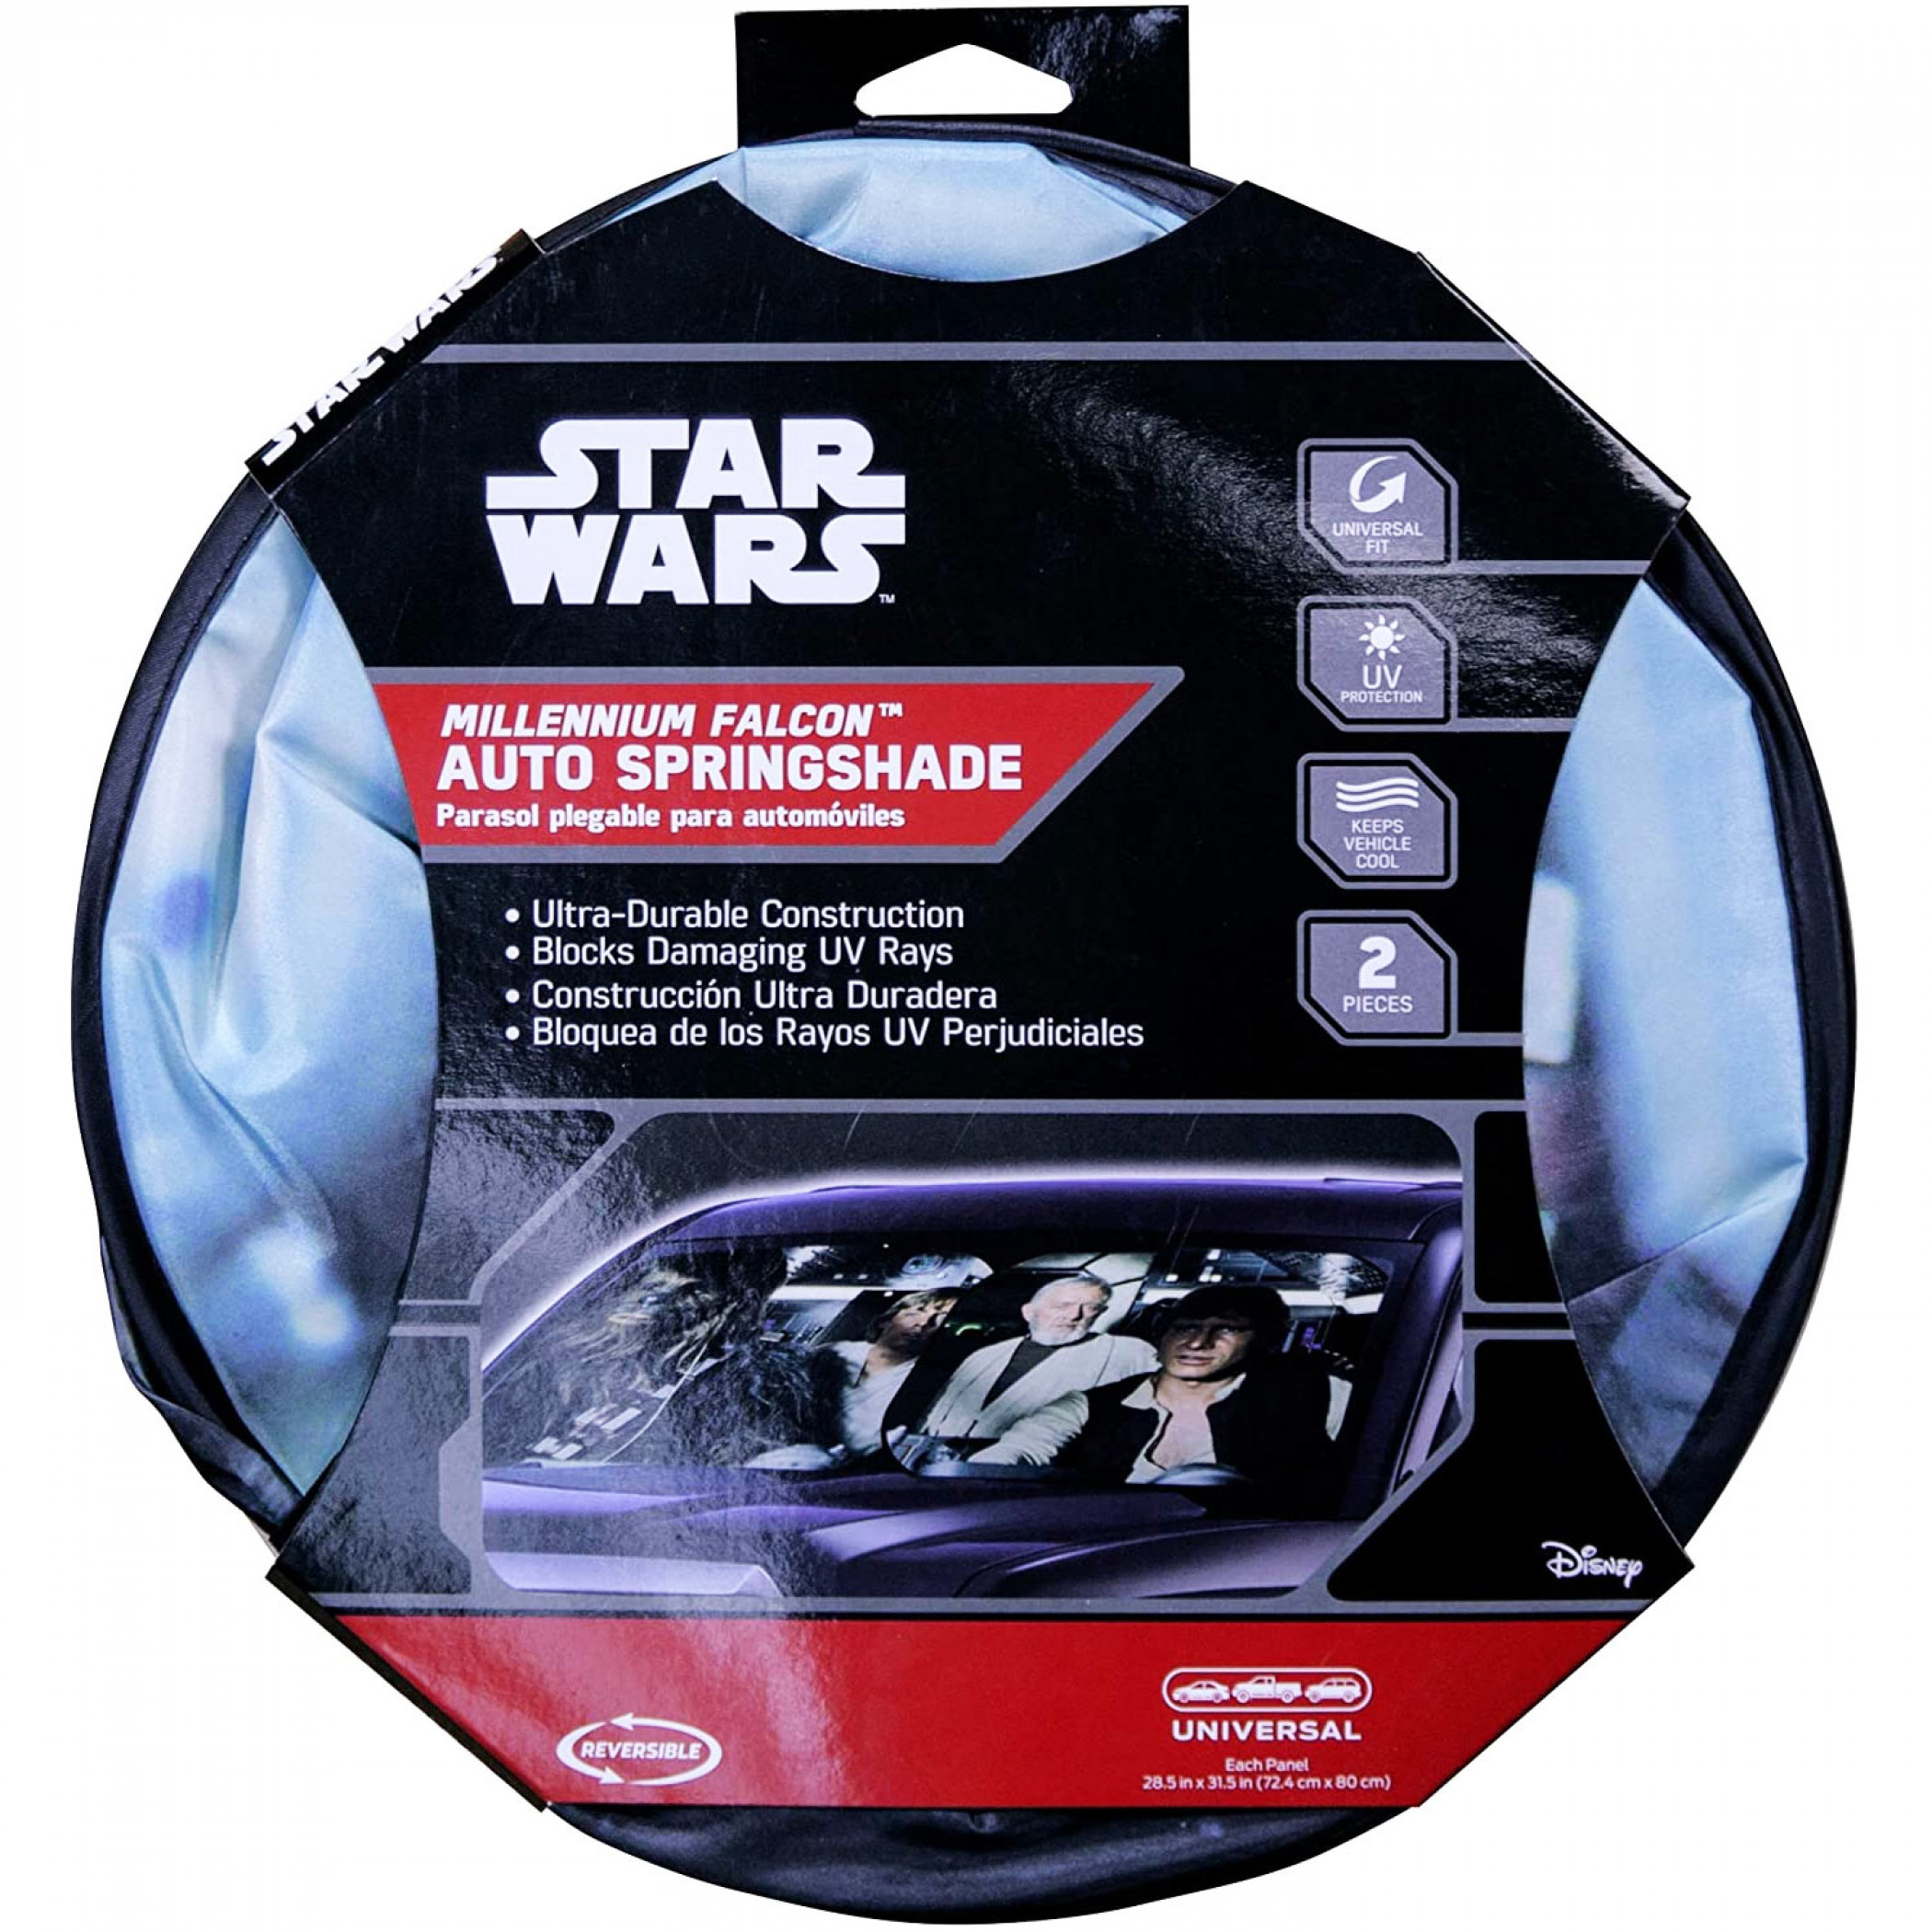 Star Wars Millennium Falcon Cockpit Springshade Car Windshield Sunshade